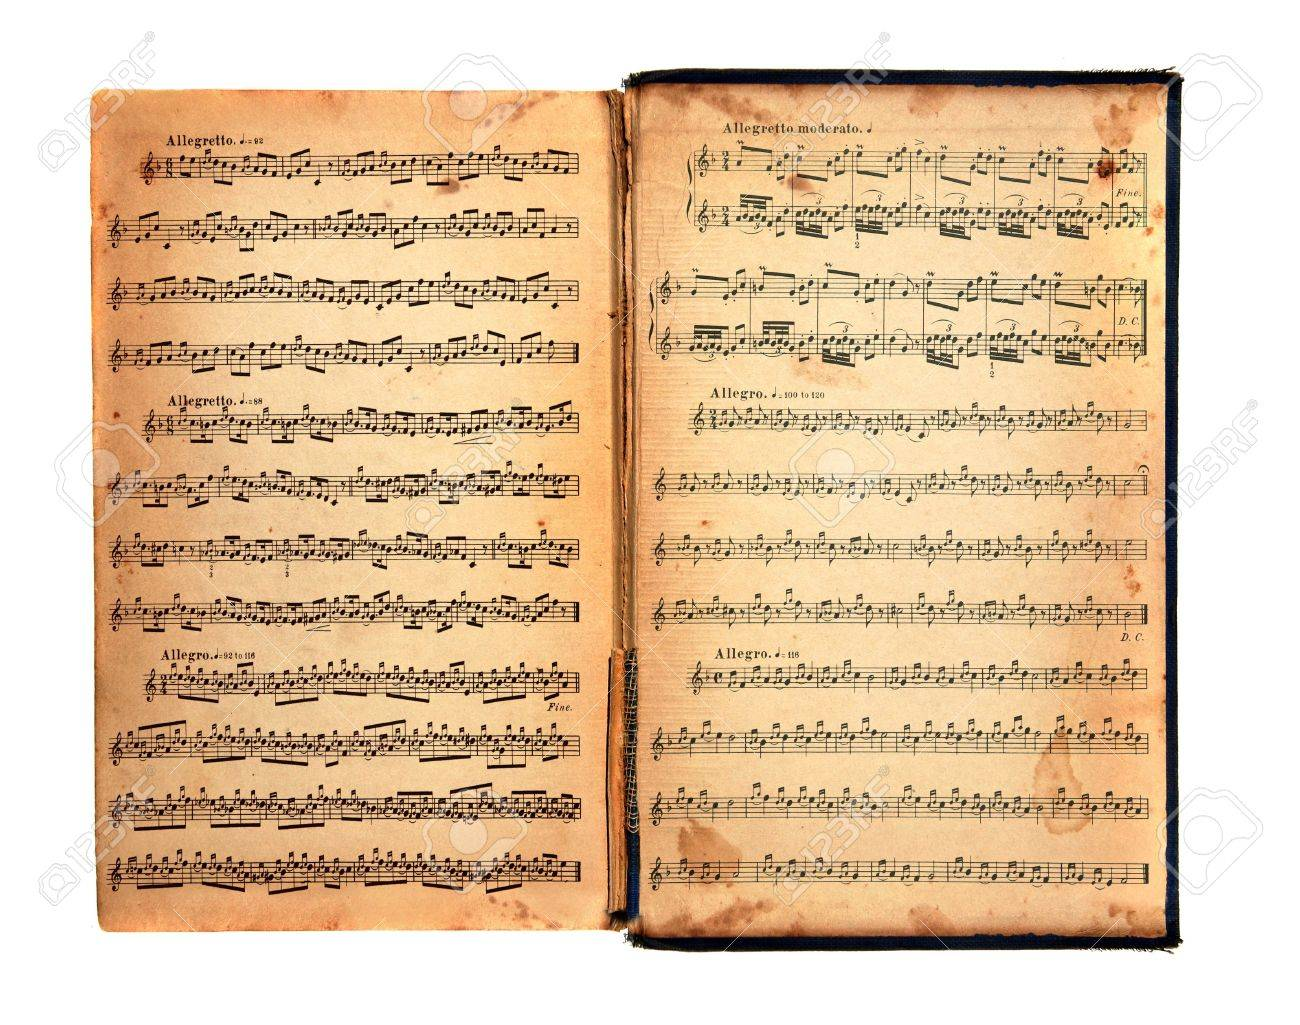 worn tattered distressed vintage book with music printed on the pages stock photo 3544382